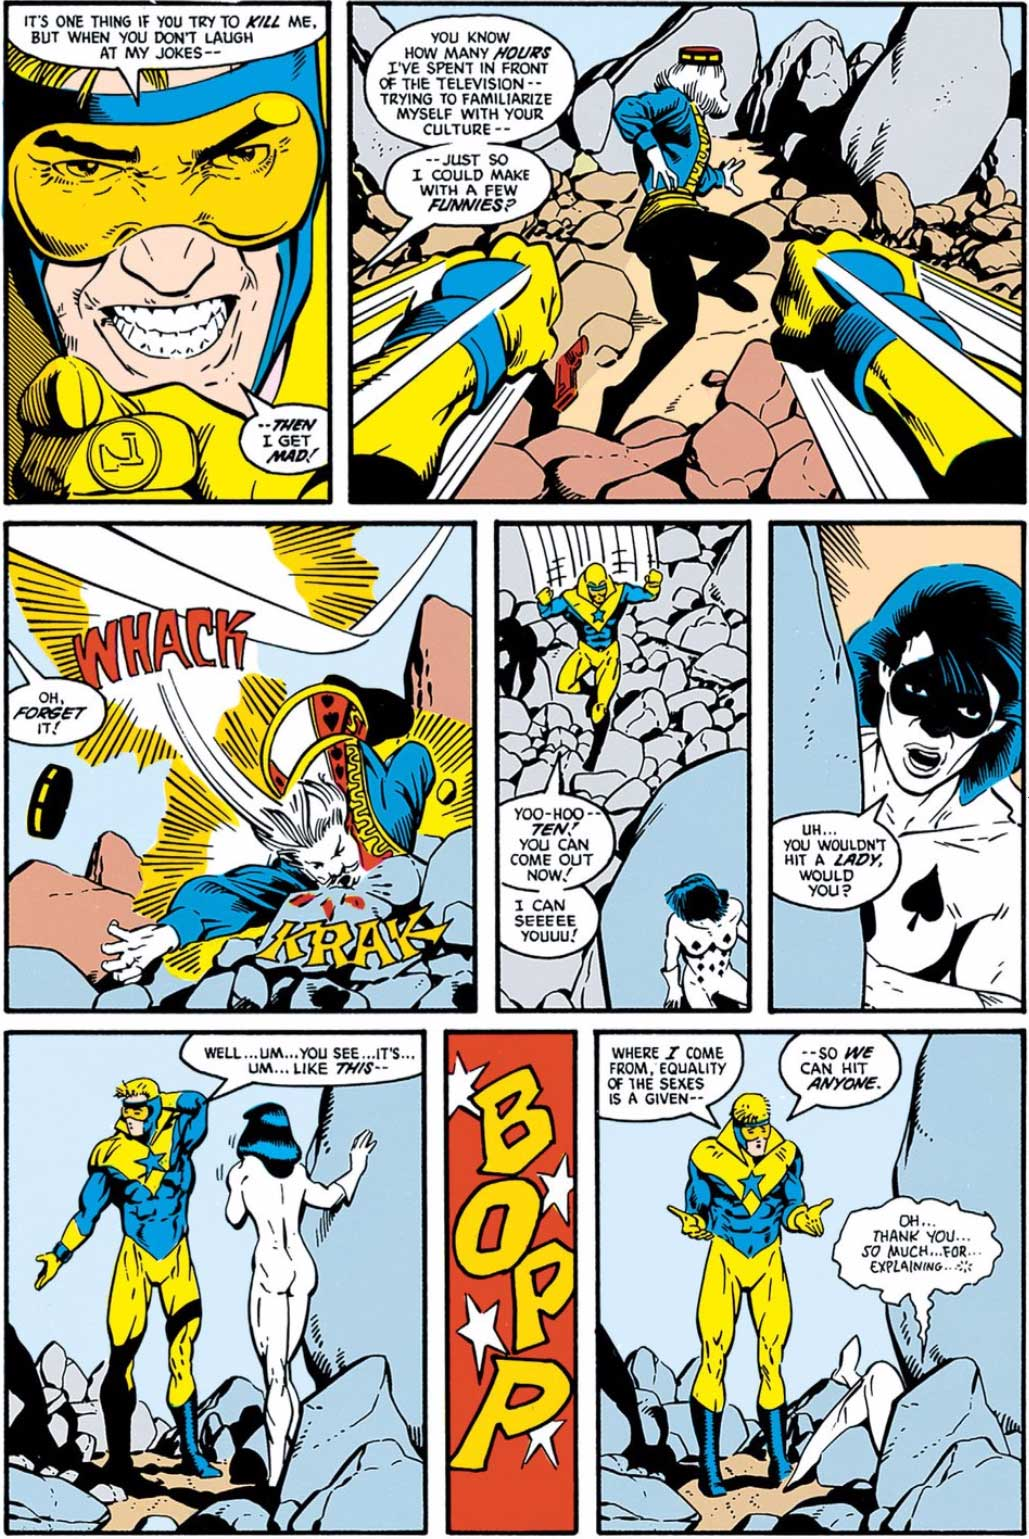 Justice League #4 by Keith Giffen, J.M. DeMatteis, Kevin Maguire and Al Gordon